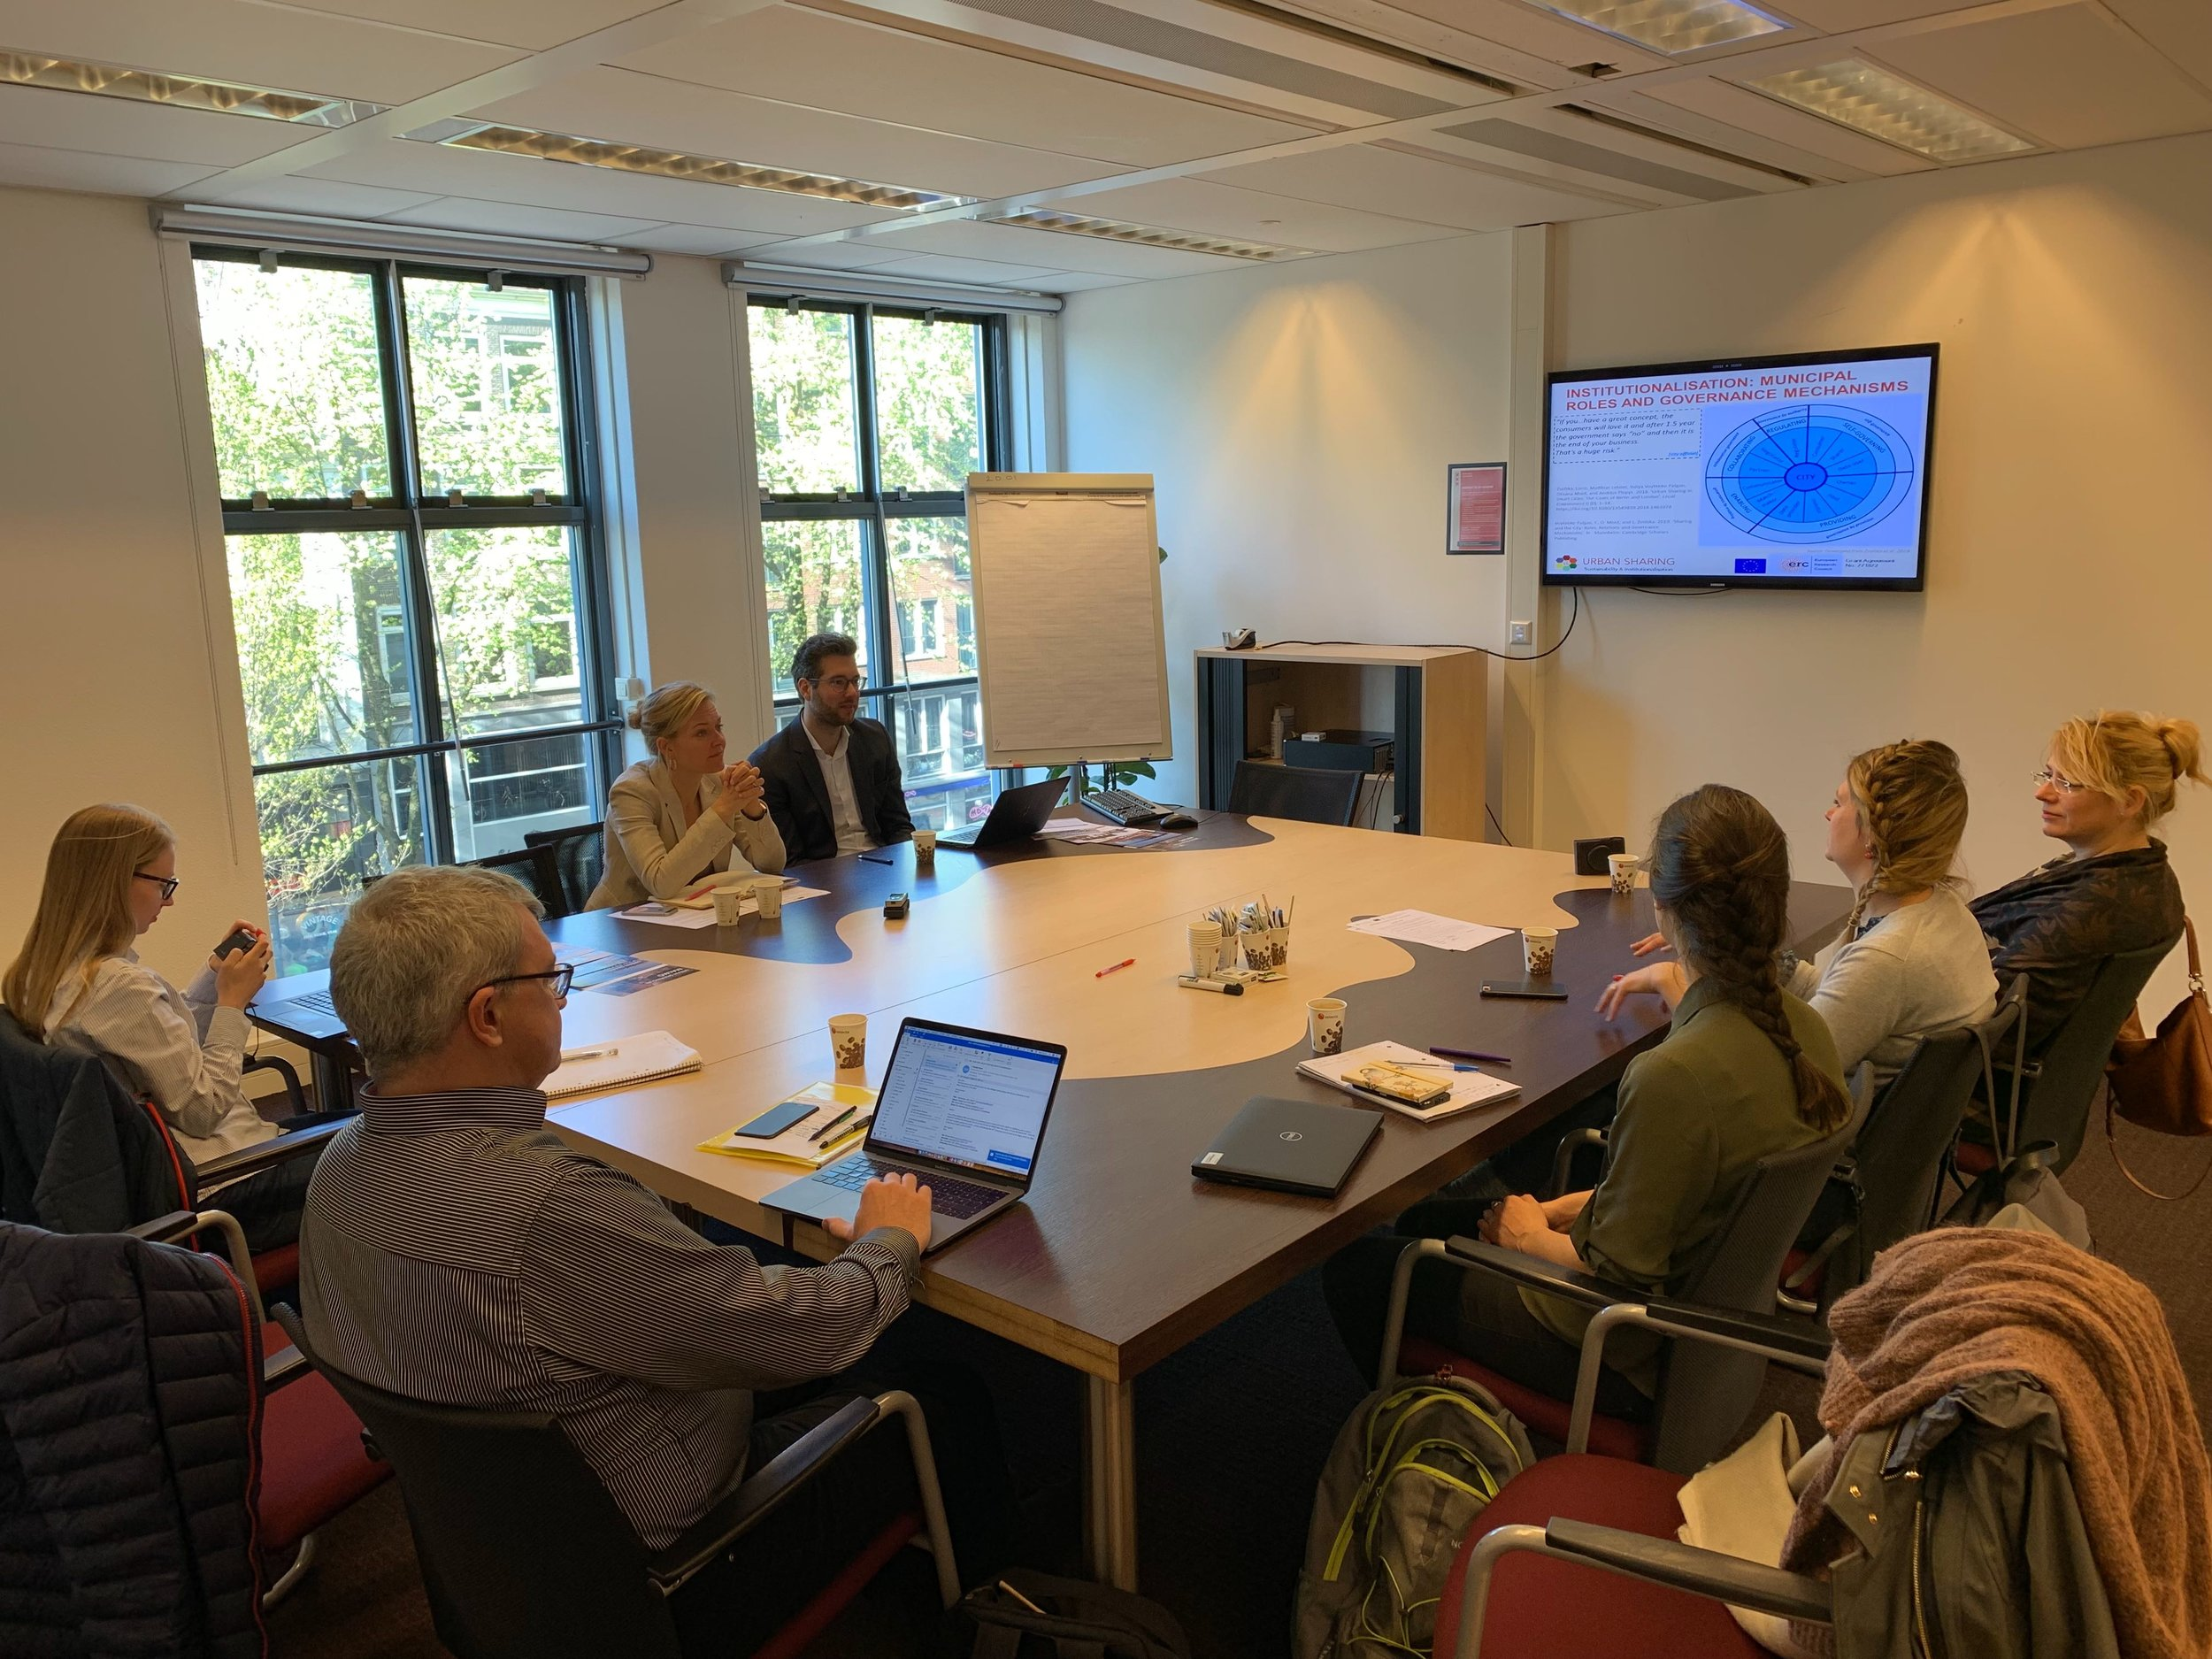 At meeting with the Department of Economic Affairs, the City of Amsterdam.